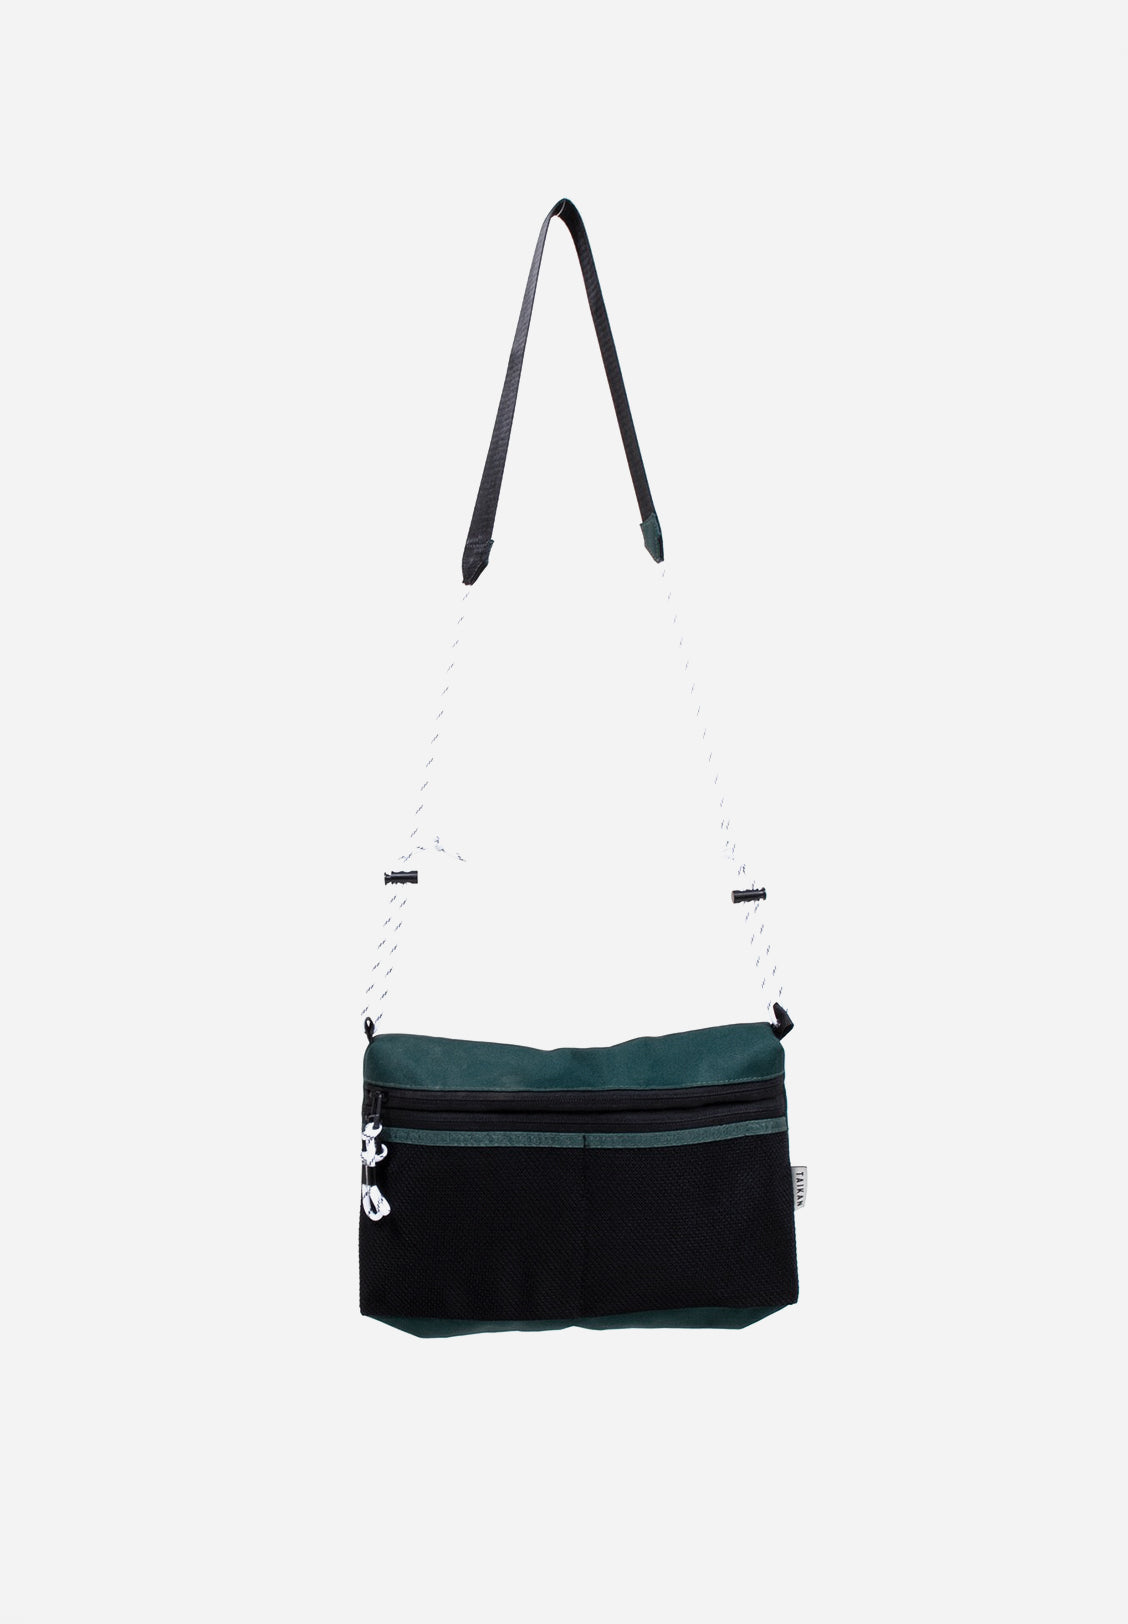 TAIKAN - SACOCHE BAG SMALL, GREEN